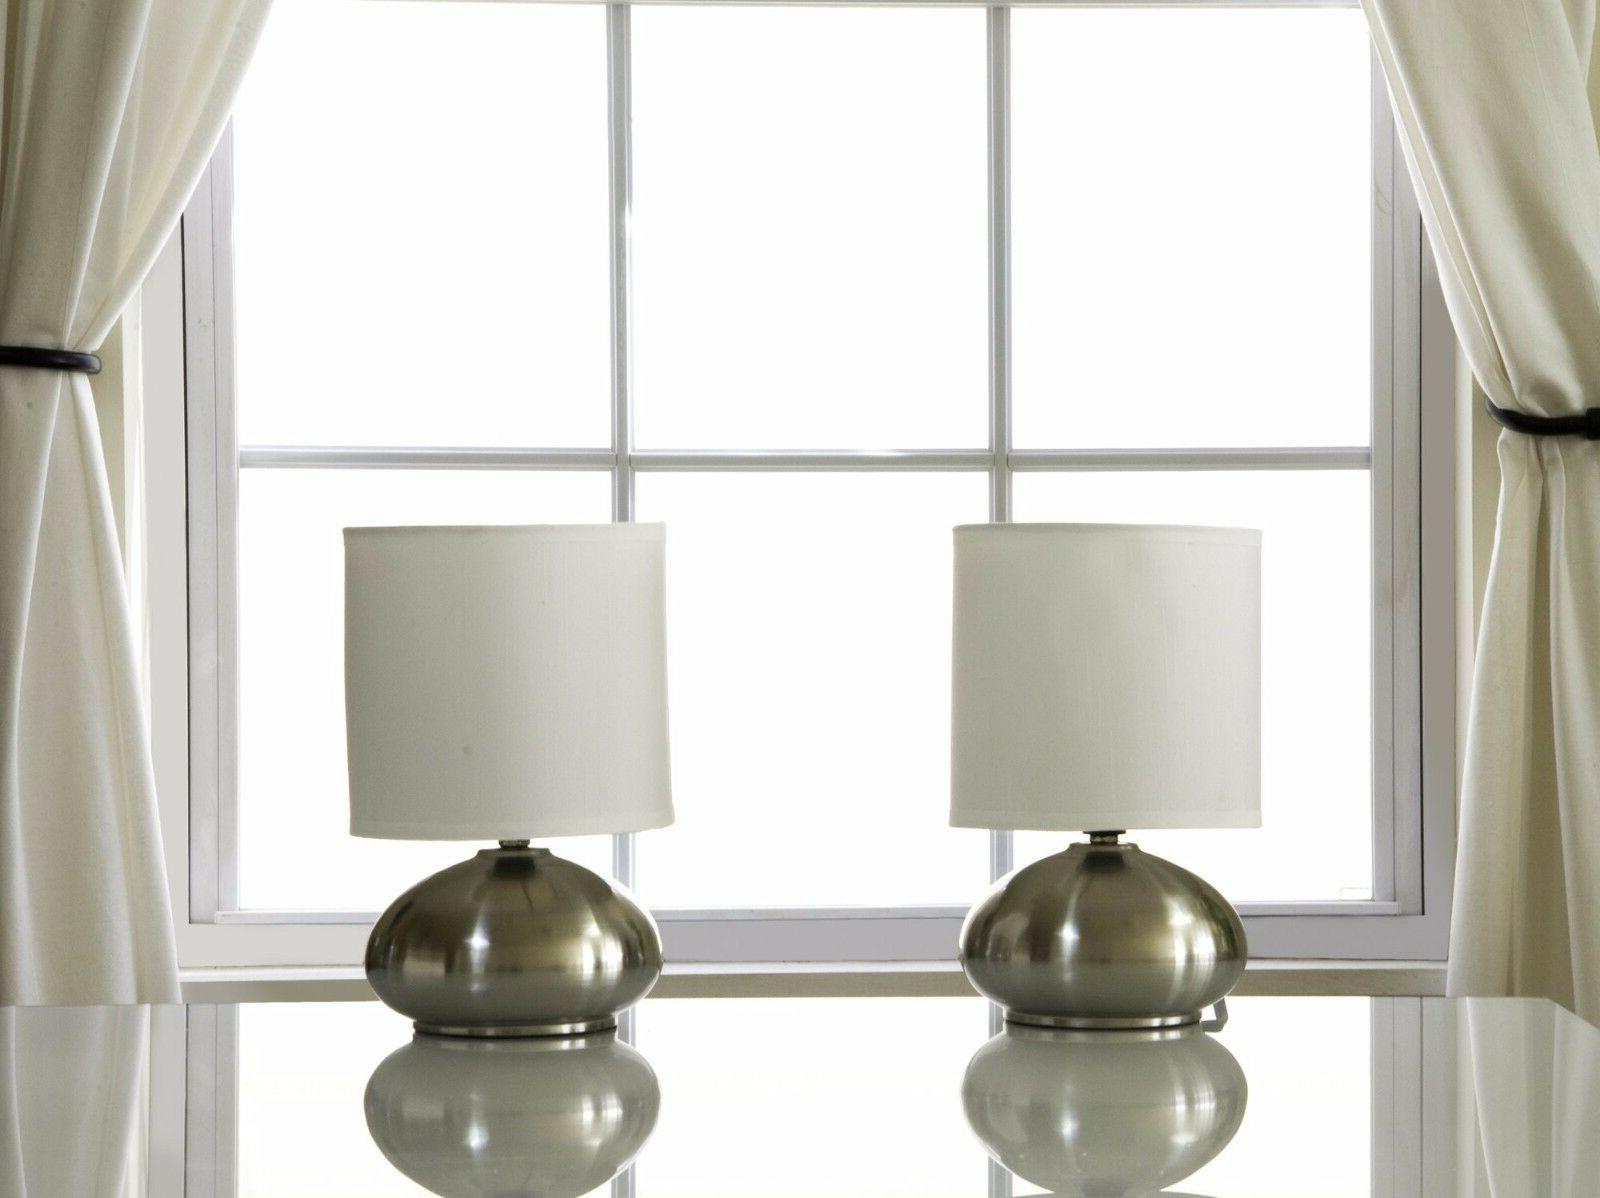 Bedside Lamps Table Lamps For Nightstands 2